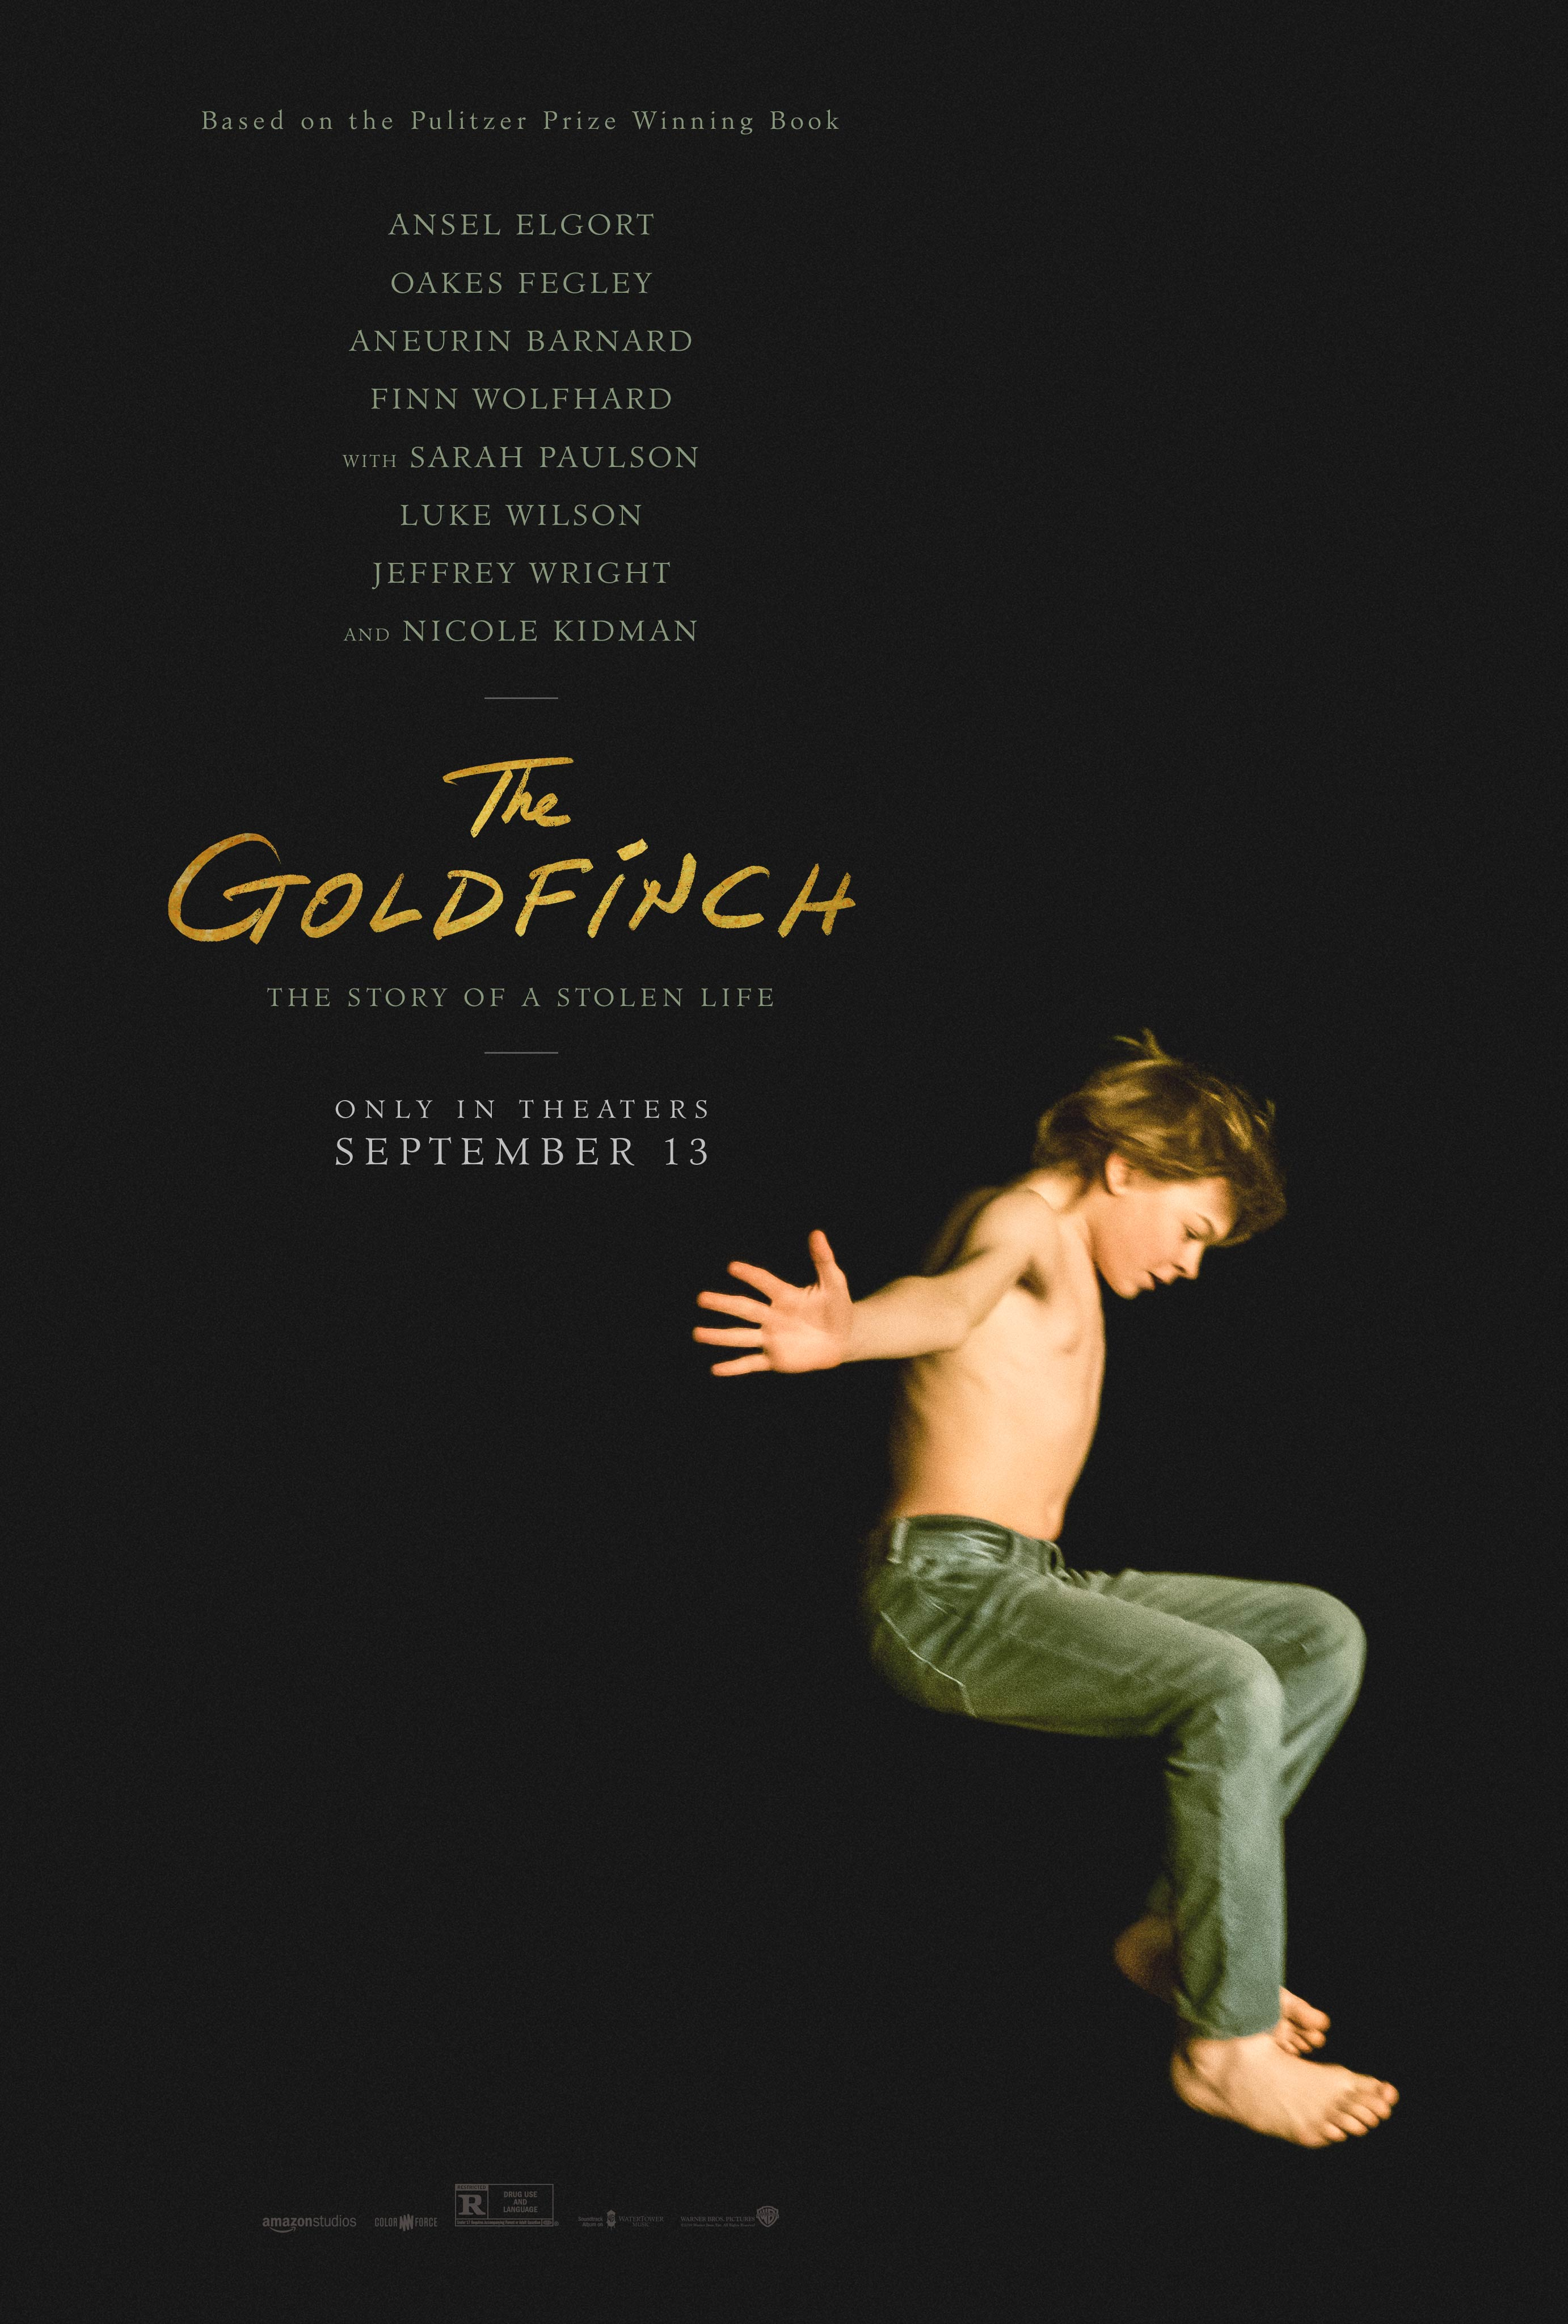 NEW MOVIE: The Goldfinch